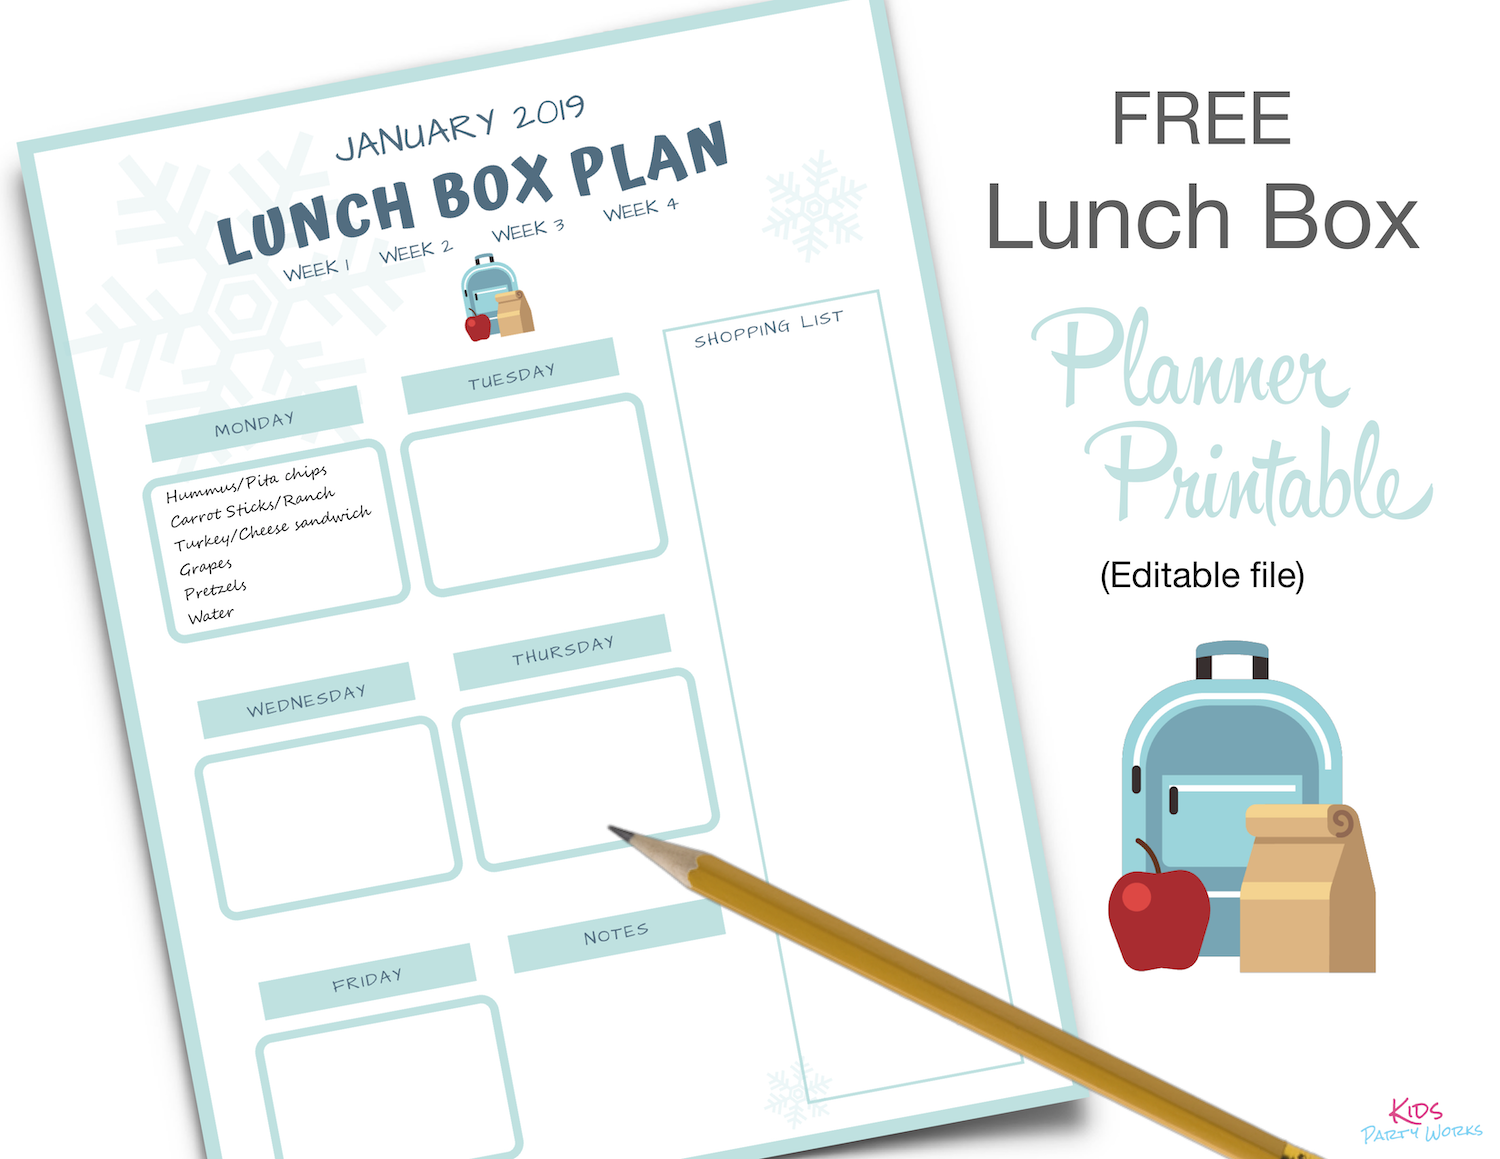 Free Lunch Box Planner. KidsPartyWorks.Com